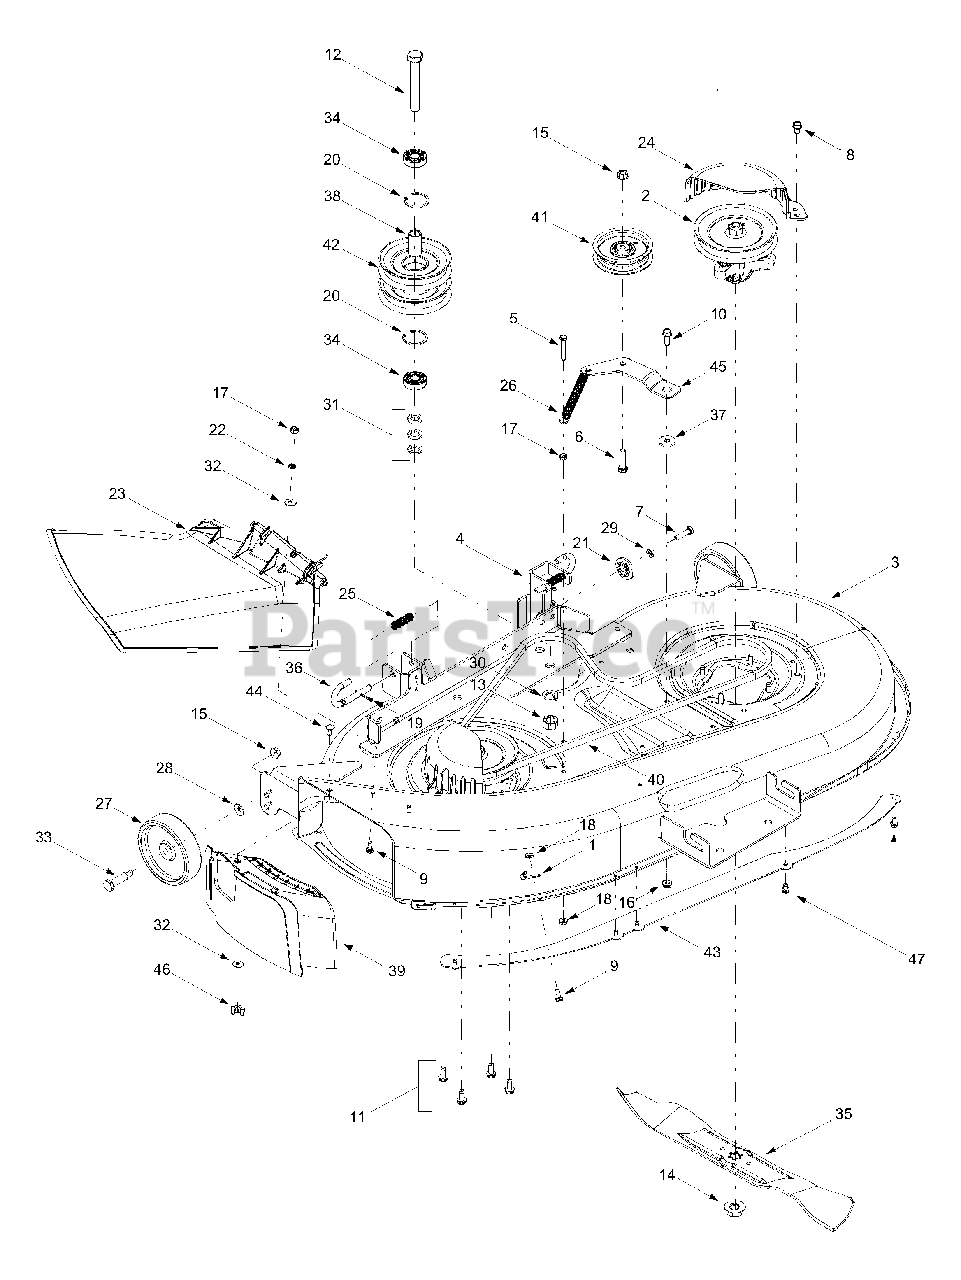 Cub Cadet Parts on the Deck Assembly Diagram for 1170